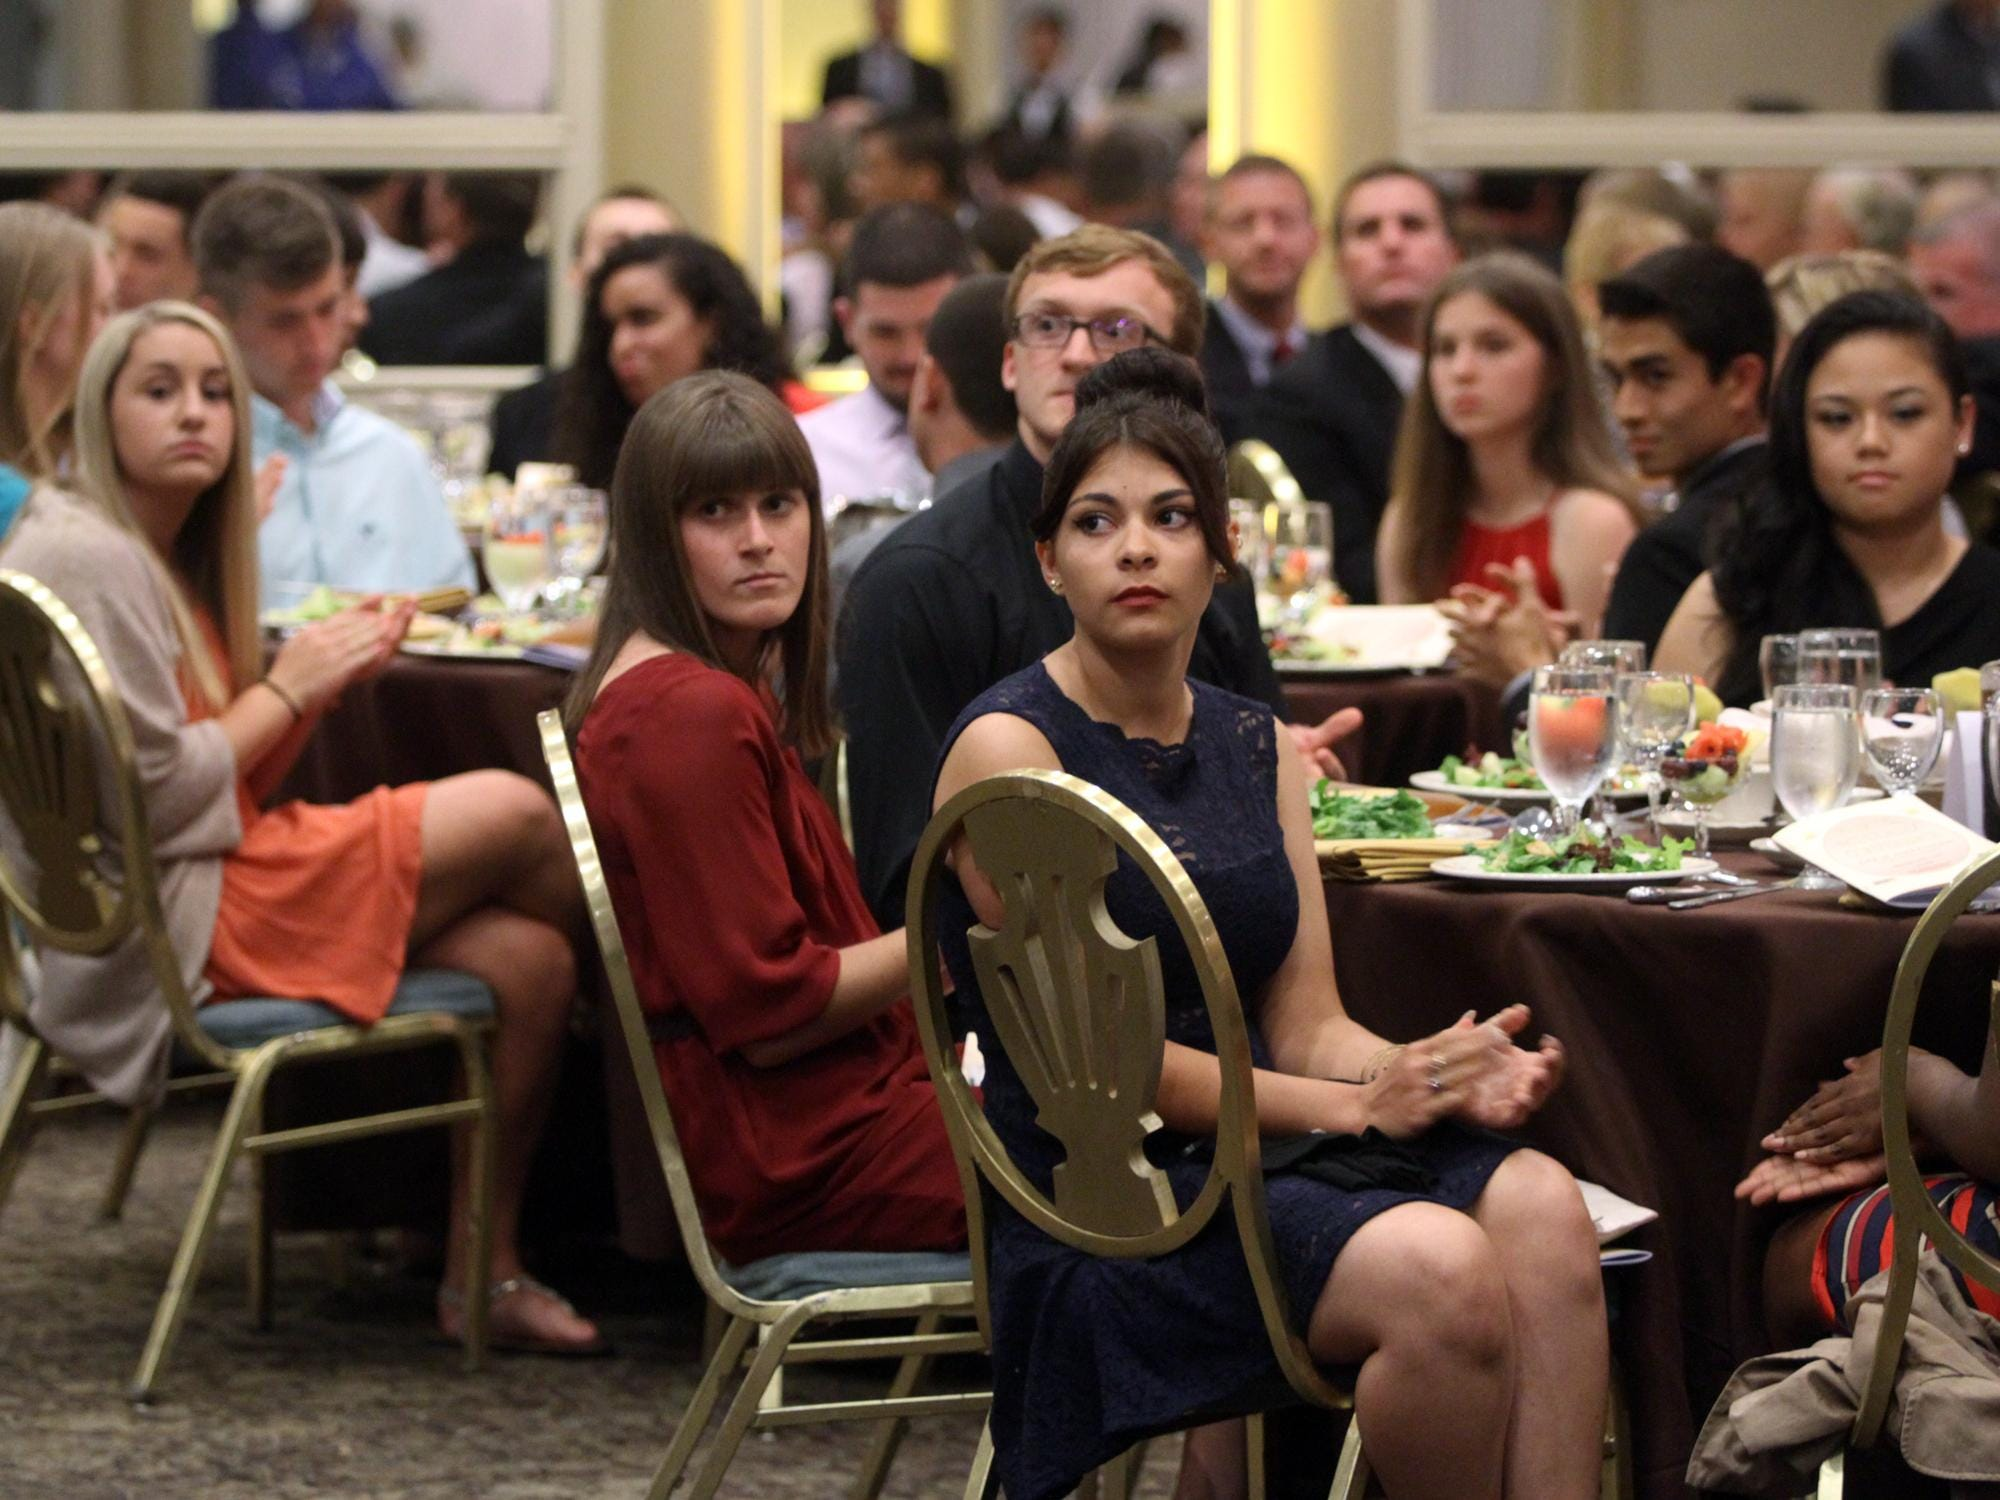 Greater Middlesex Conference athletes applaud during the GMC's annual Scholar Athlete Banquet, Monday, June 1, 2015, at the Pines Manor in Edison, NJ.